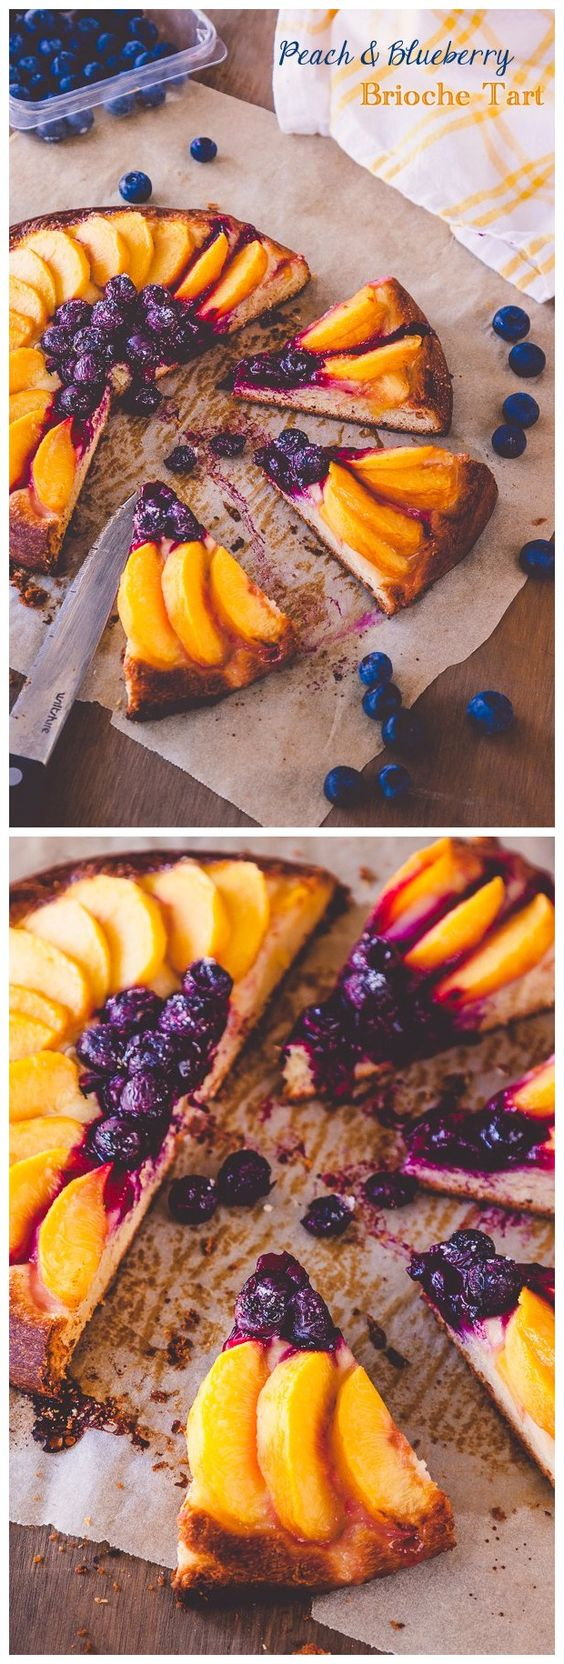 Peach and Blueberry Brioche Tart Recipe: